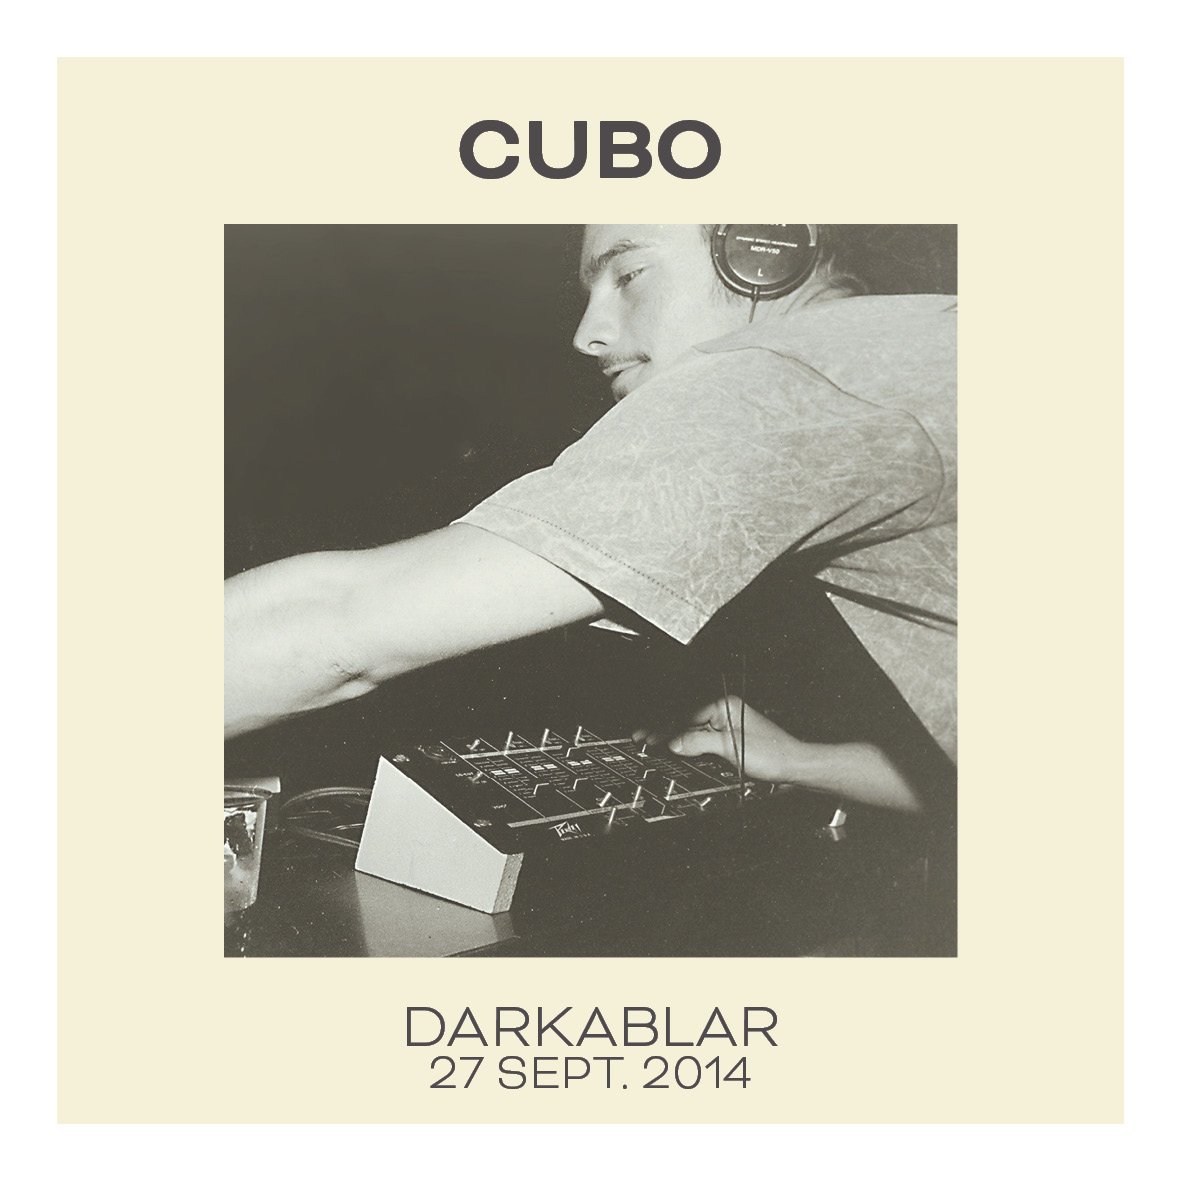 dj cubo, darkablar 27 sept. 2014